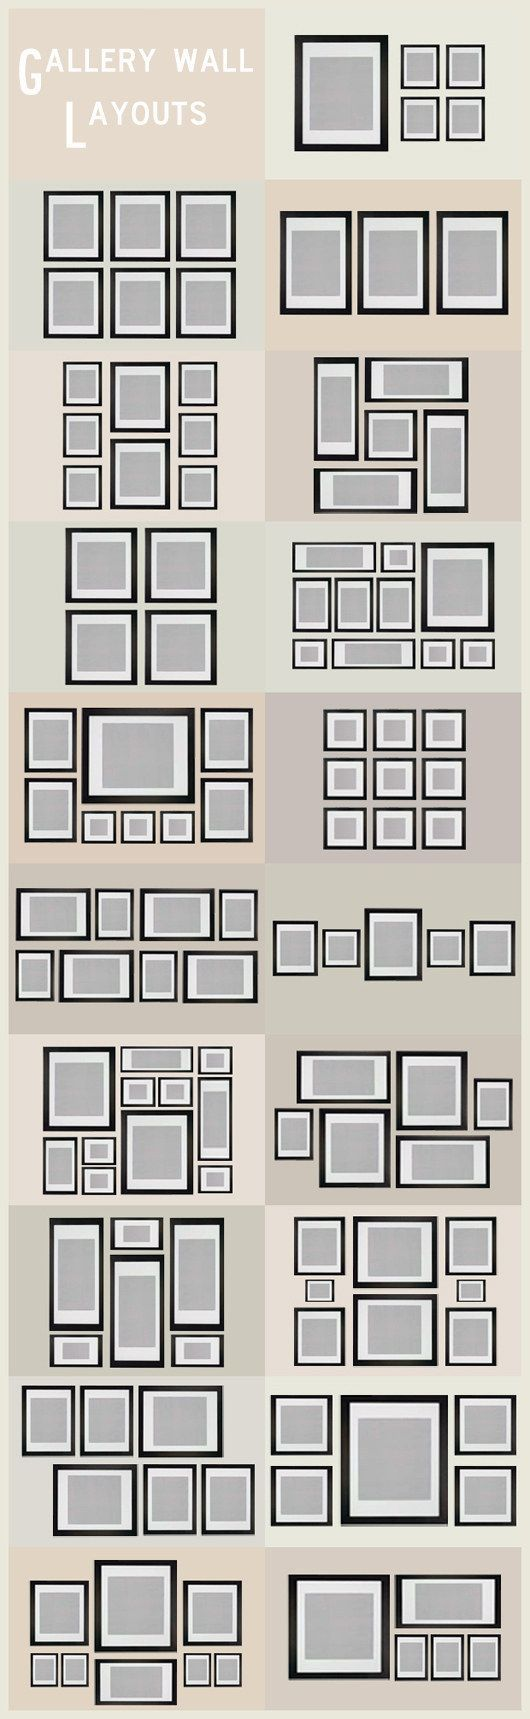 Permalink to Gallery Wall Layout Ideas | These Diagrams Are Everything You Need To Decorate Y…